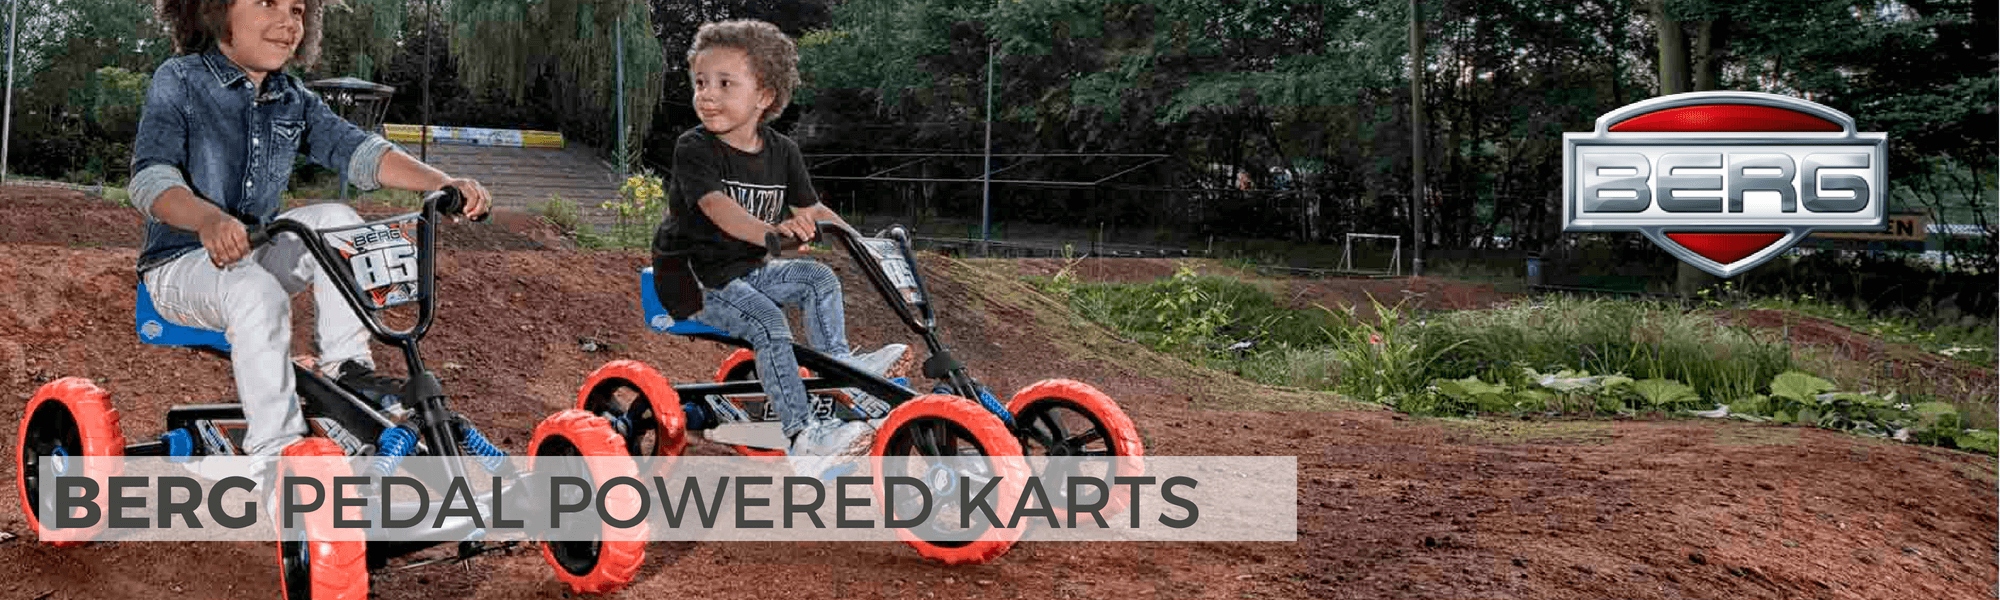 berg kids ride on pedal karts